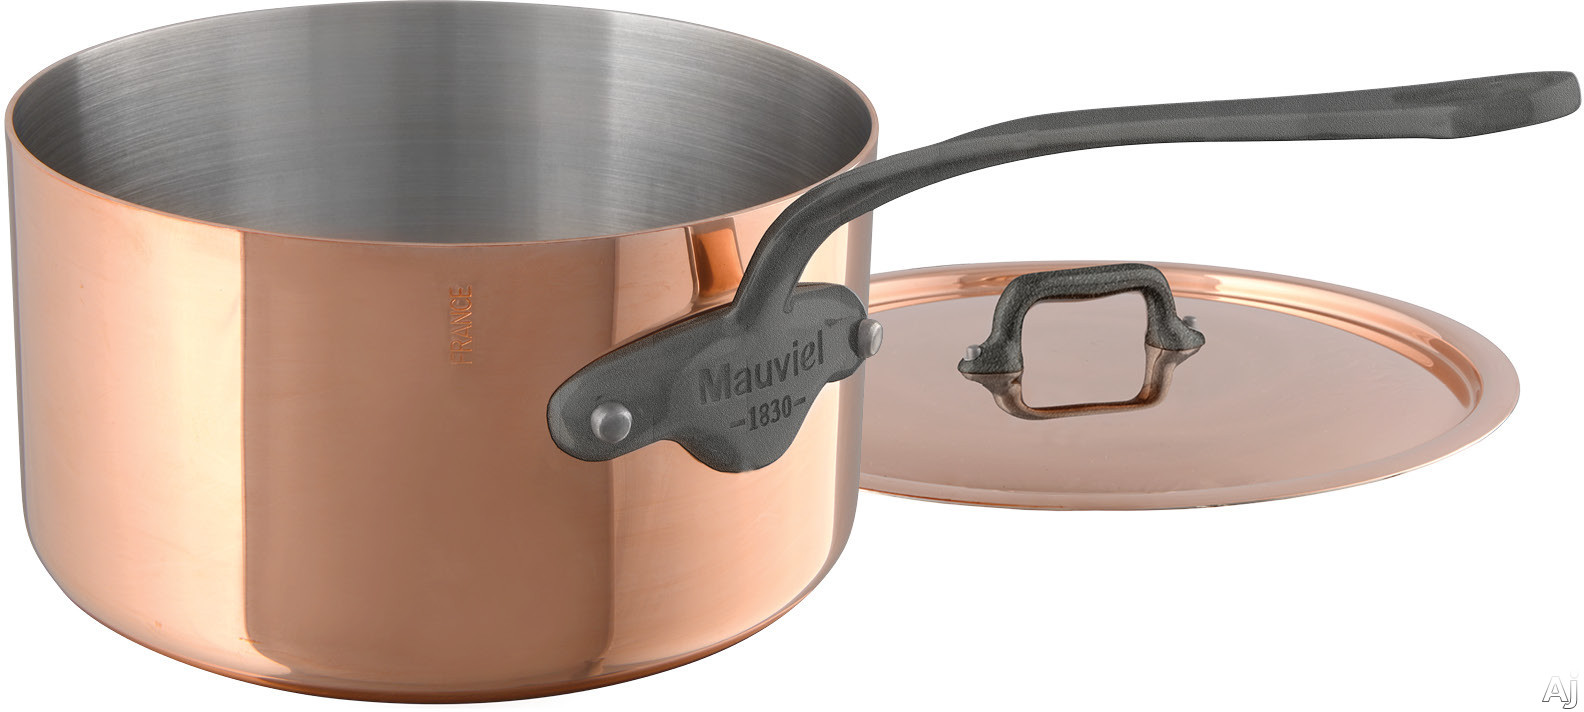 Mauviel 645017 M'150C2 1-9/10 Quart Sauce Pan and Lid with Copper Stainless Steel, High Performance and Non-Reactive